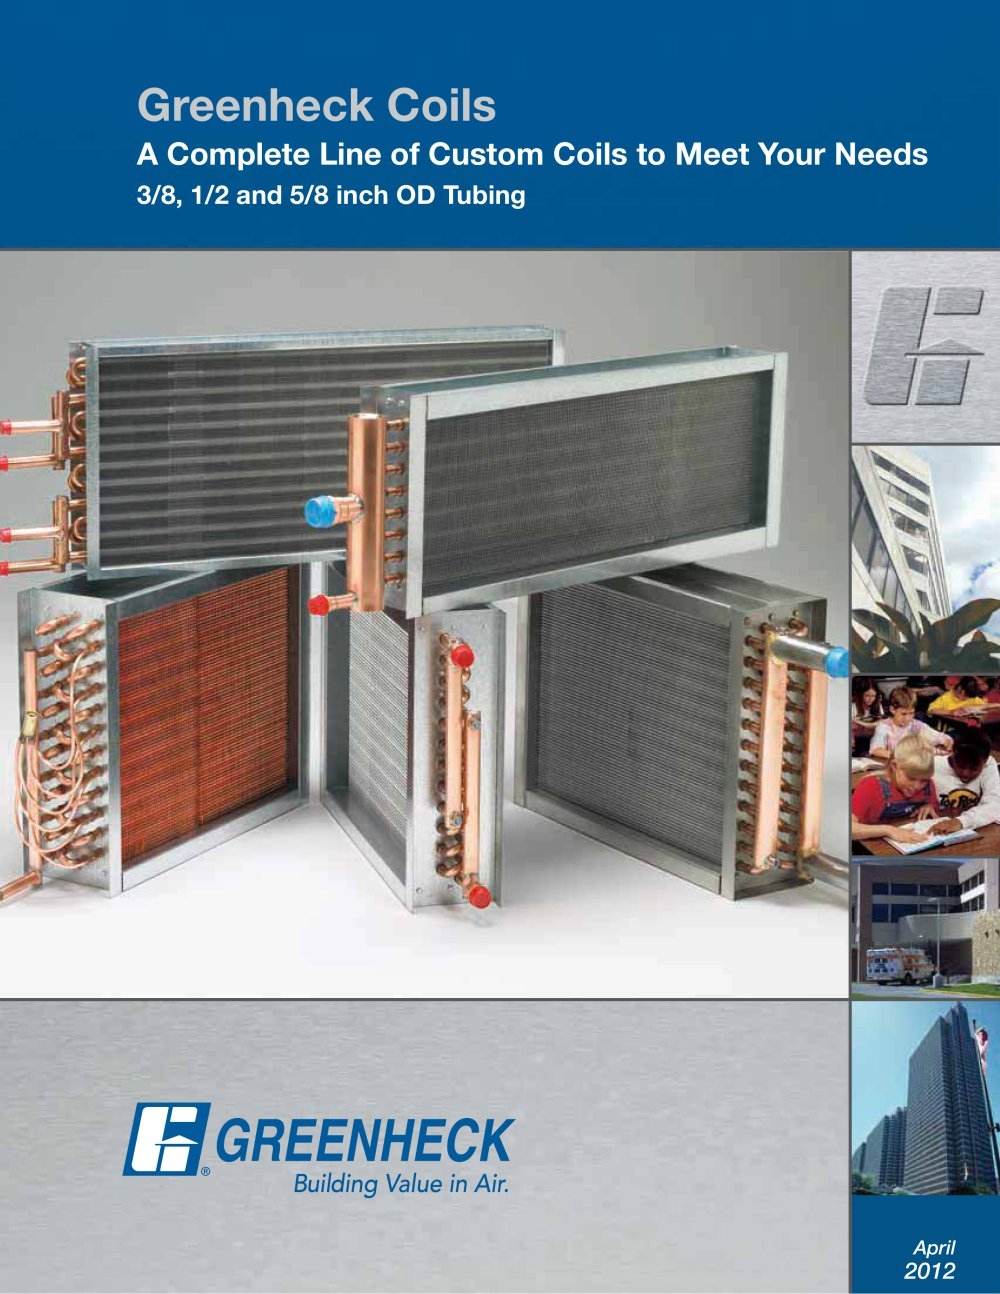 greenheck sq wiring diagram Download-Greenheck Coils Brochure Greenheck Pdf Catalogue Greenheck Sq Wiring Diagram Image 12-n